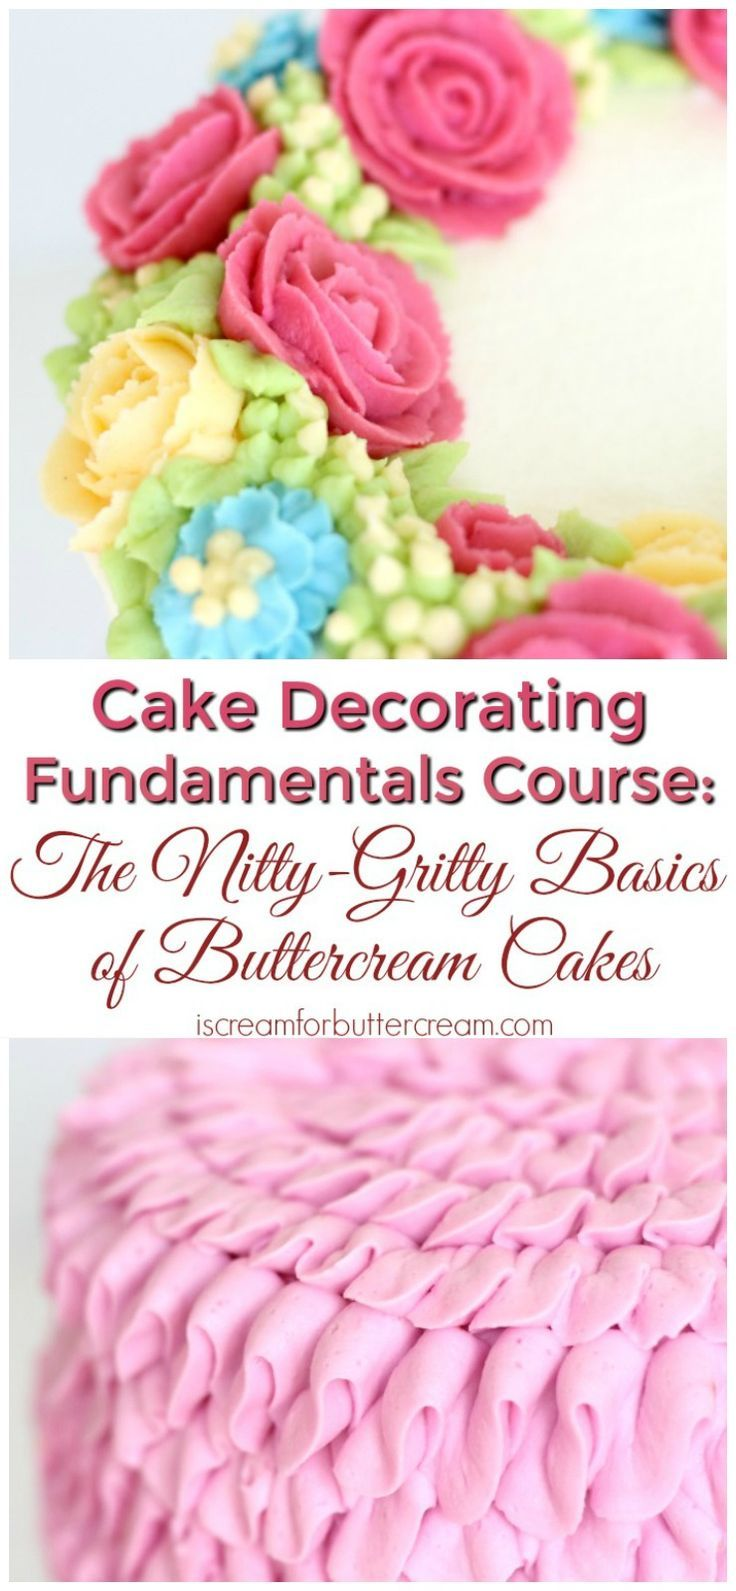 Cake Decorating Course For Beginners : 17 Best ideas about Cake Decorating Courses on Pinterest ...